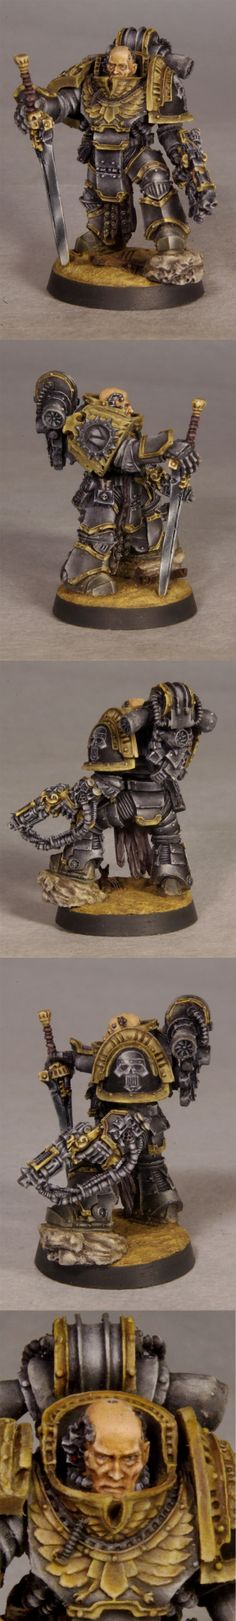 Iron Warriors legion praetor by weirdboy